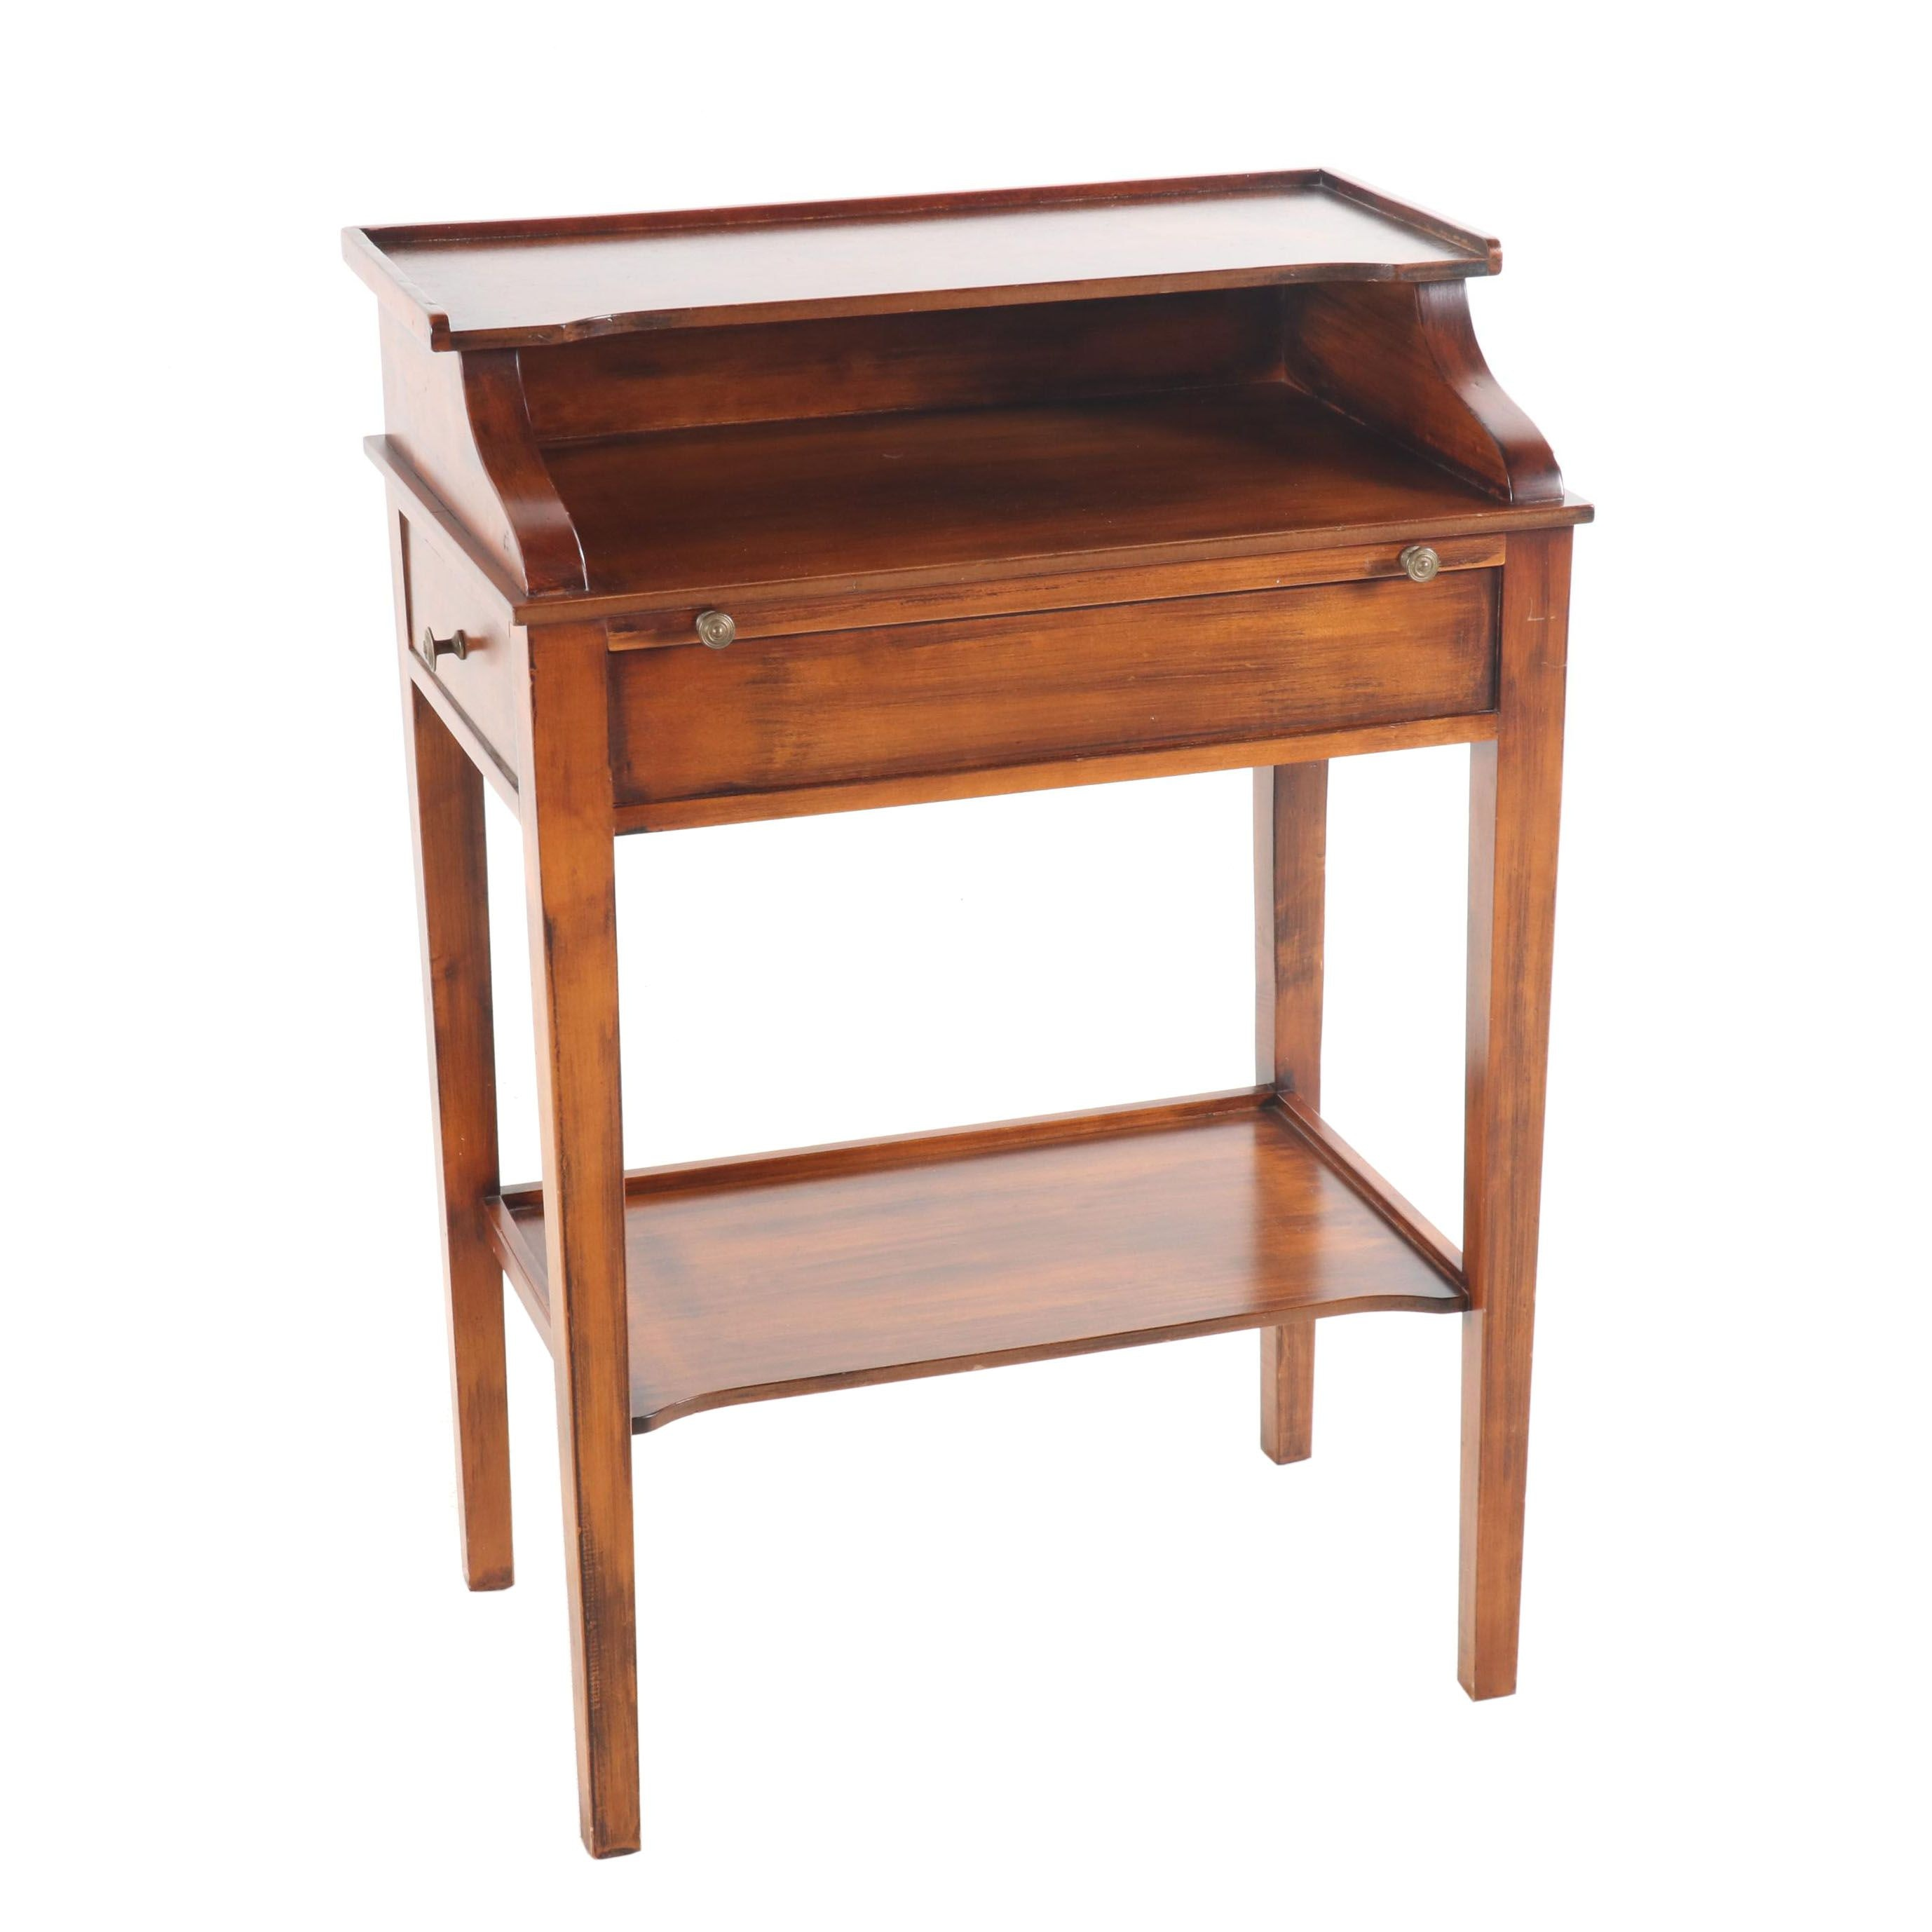 Sareid, Ltd. Painted Wooden Side Table, Late 20th Century